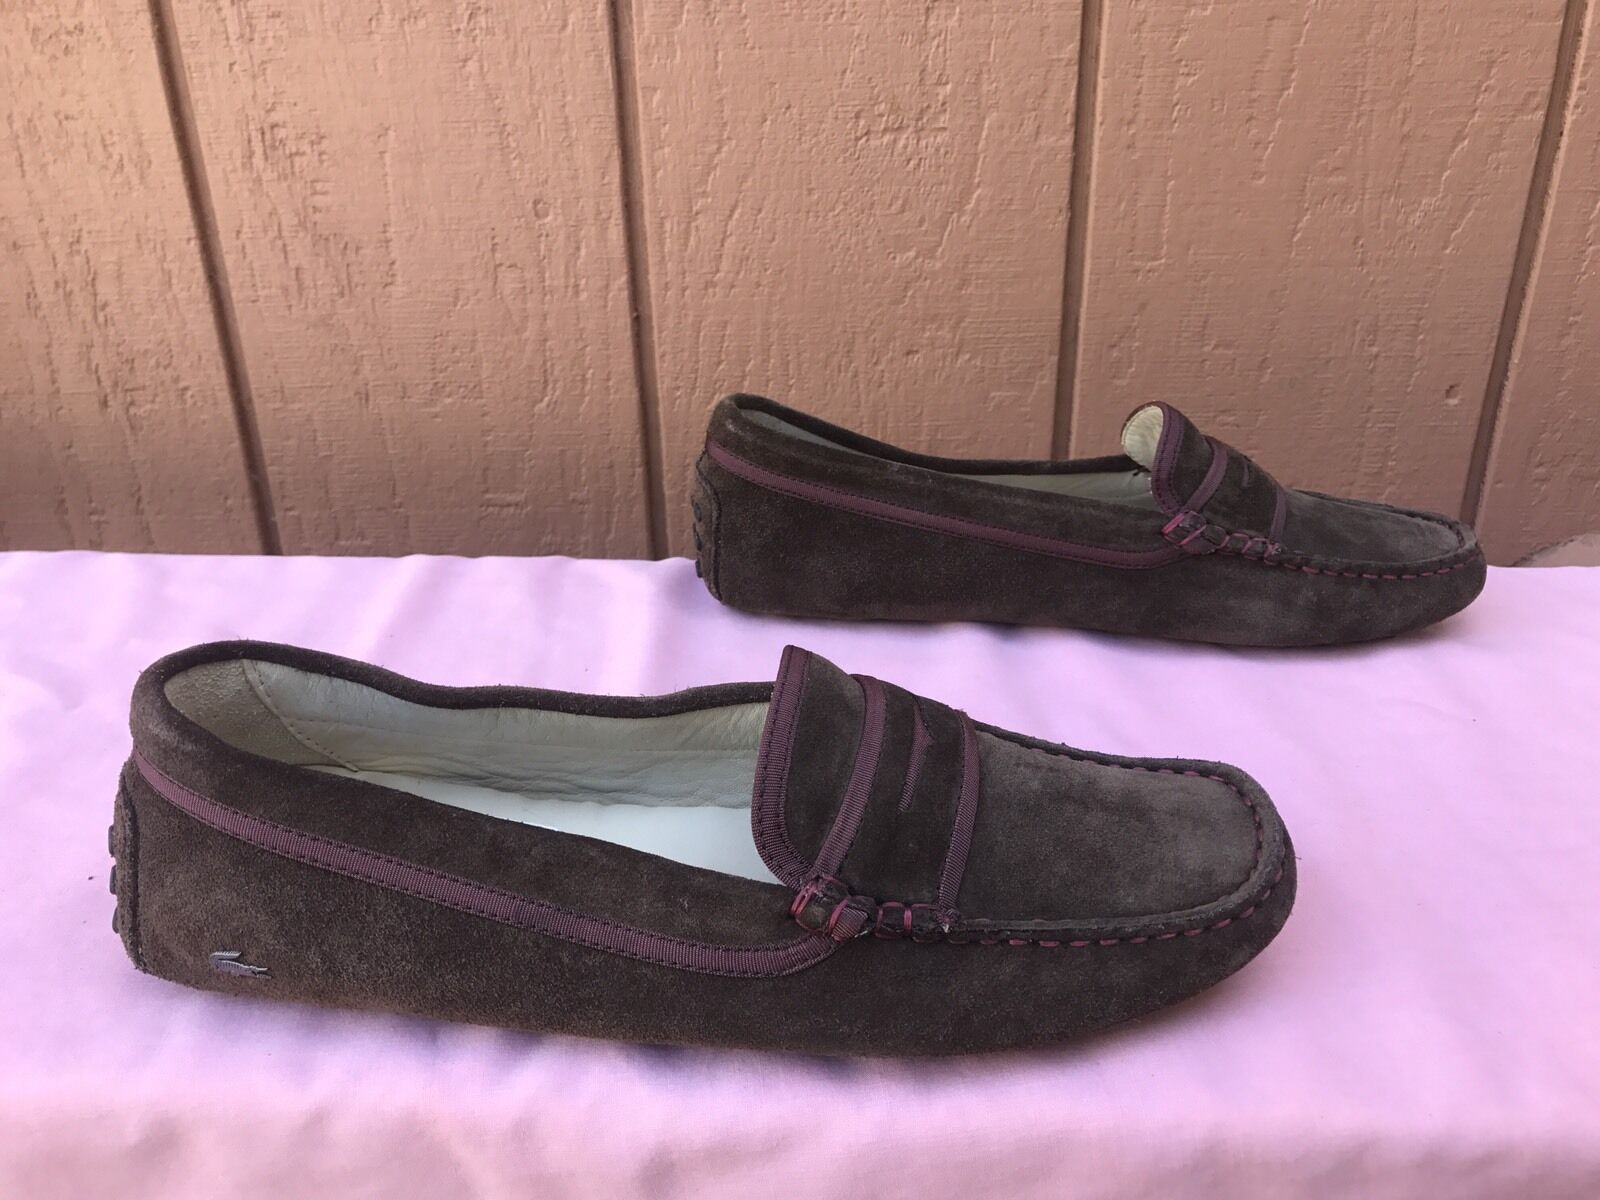 MINT Womens Lacoste Loafers Concours 3 Clw Suede Suede Suede Moccasins Brown US 8.5 EUR 40 1ac8ba